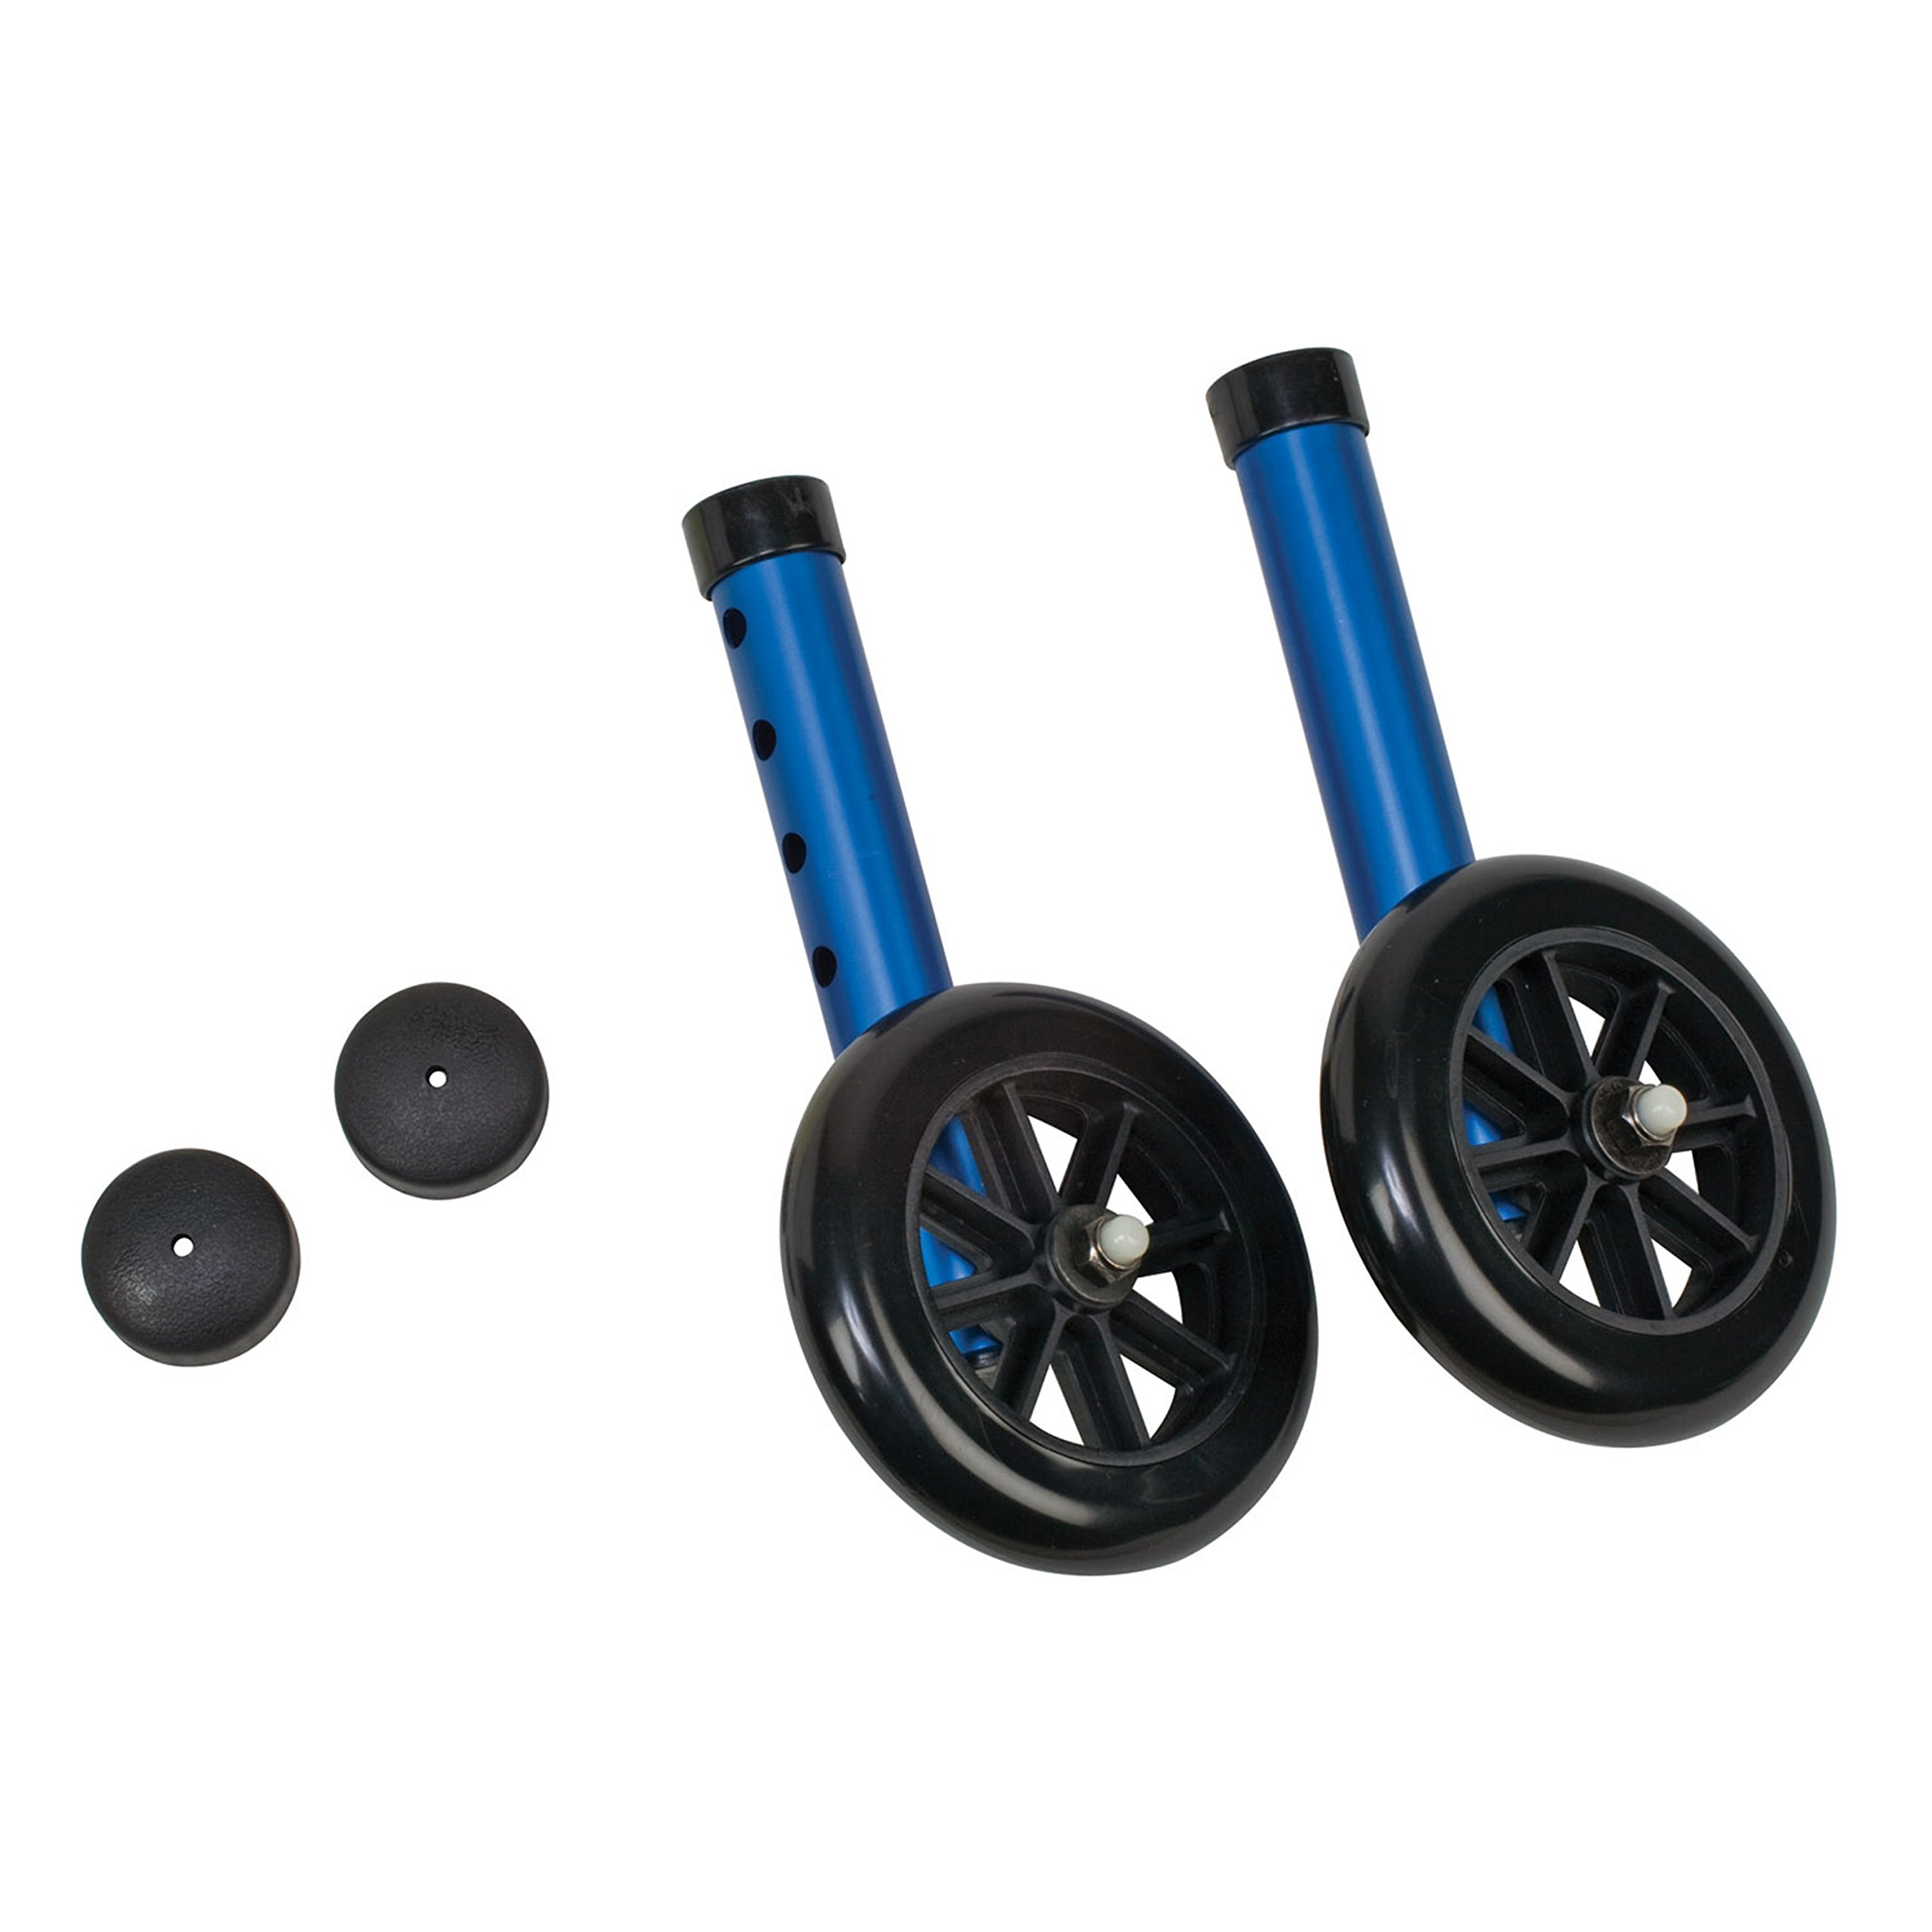 DMI Walker Wheels with Glide Caps, Blue, One Pair